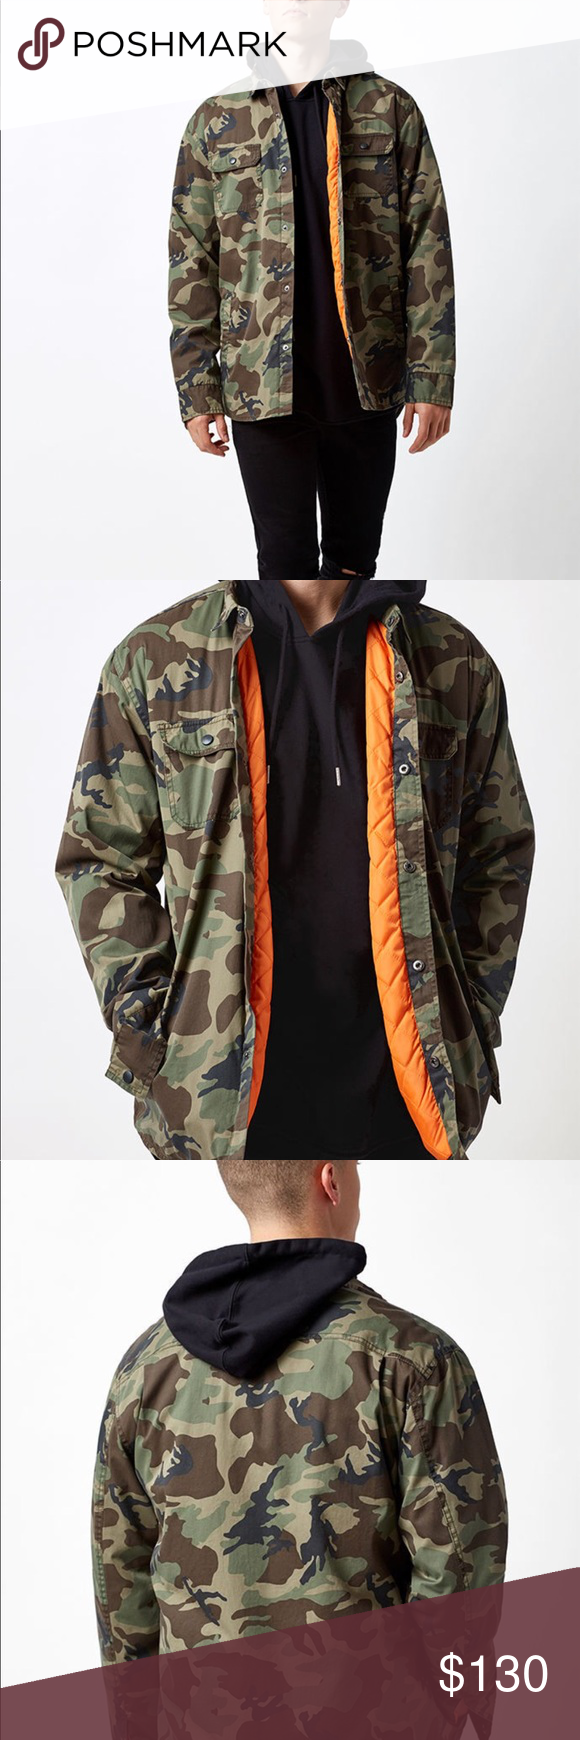 fb72d29f4d5ad Pacsun Camo Jacket Price negotiable - Light but warm, pacsun camouflage  jacket. It's never